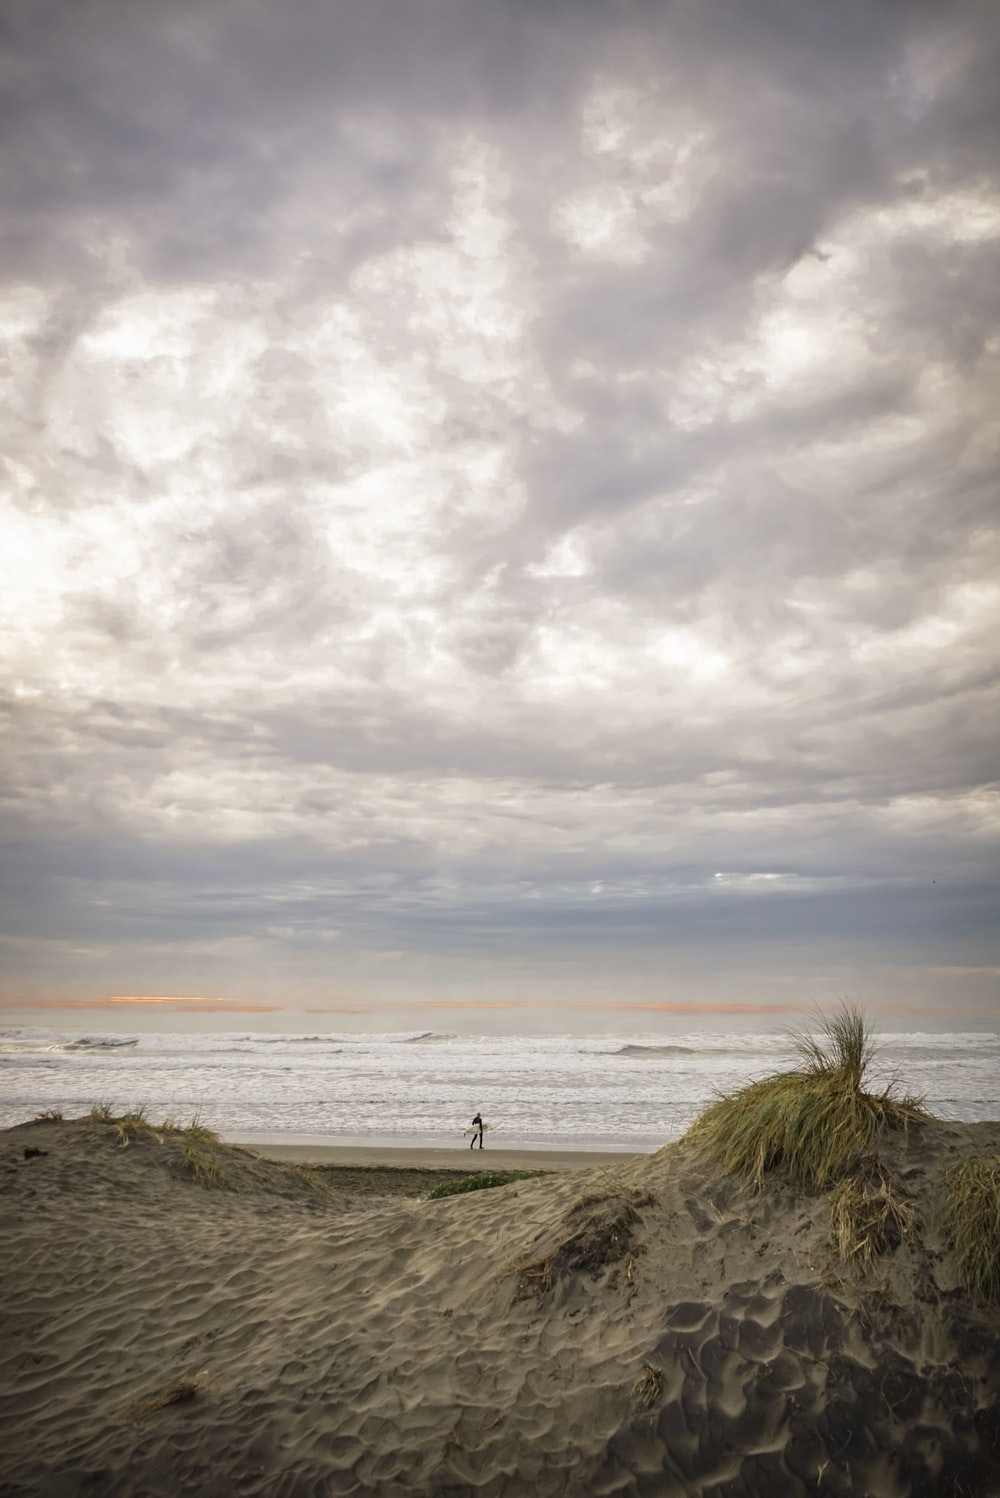 person in shore under gray clouds